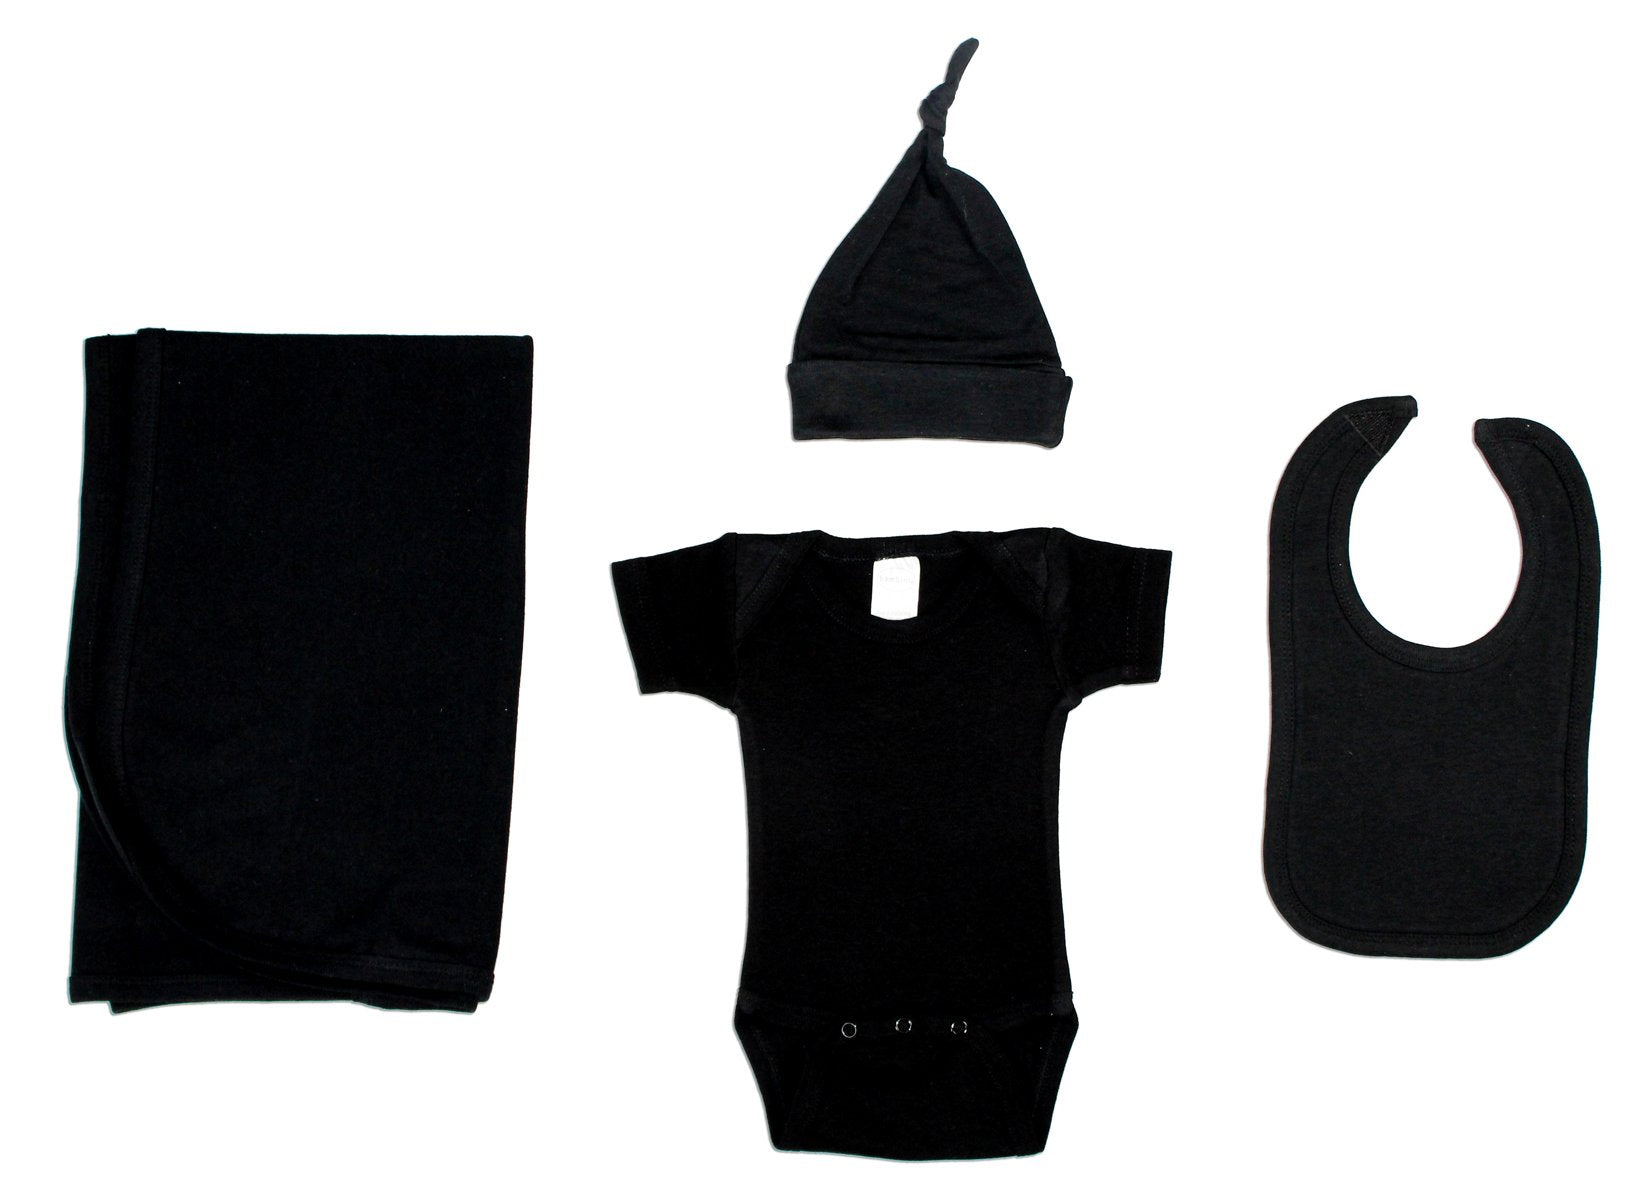 Bambini Black 4 Piece Layette Set - Baby World Inc